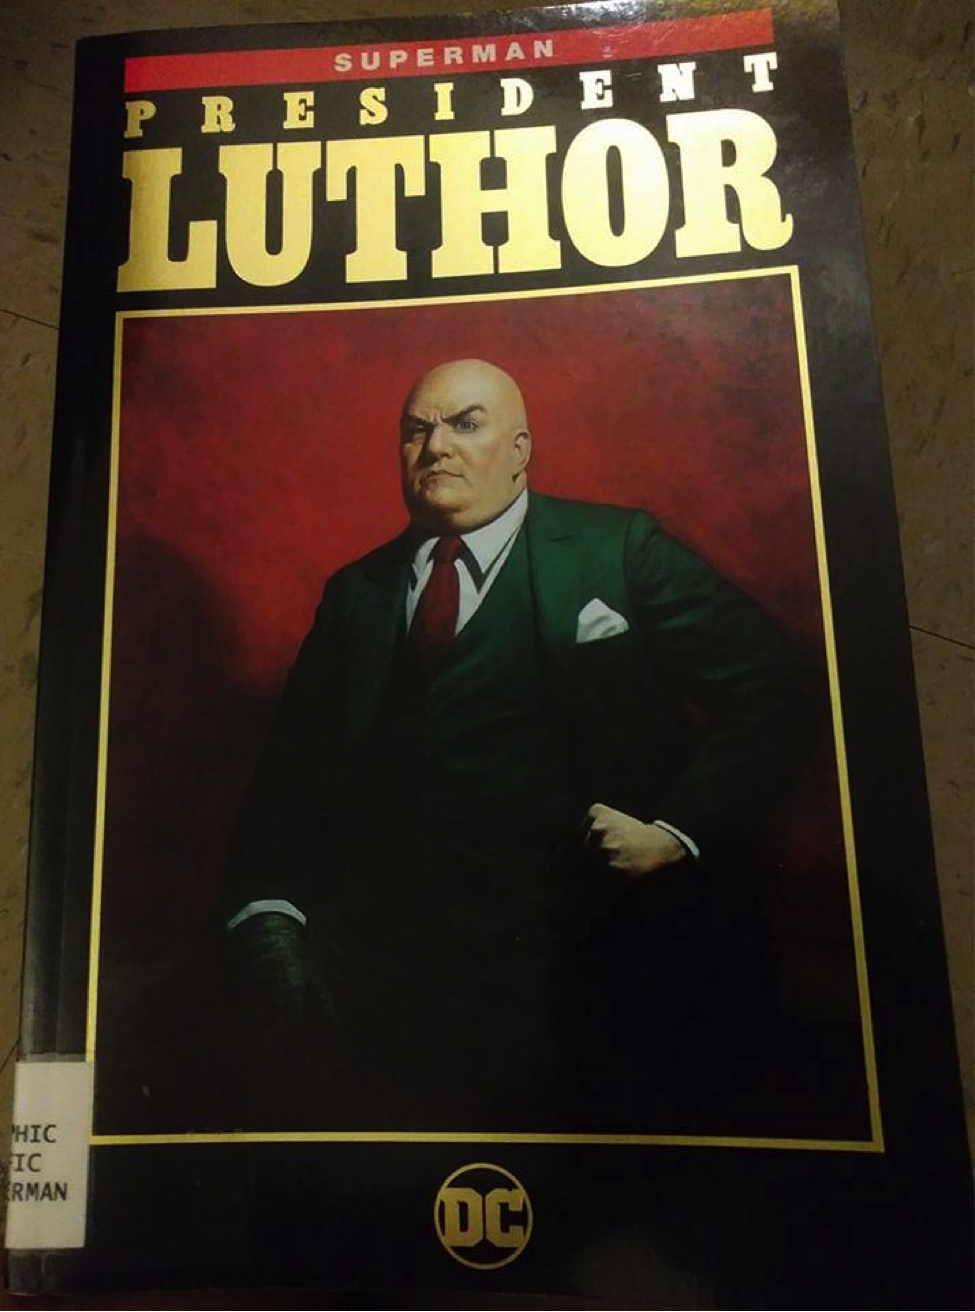 A copy of President Luthor. Photo by Juan Vasquez